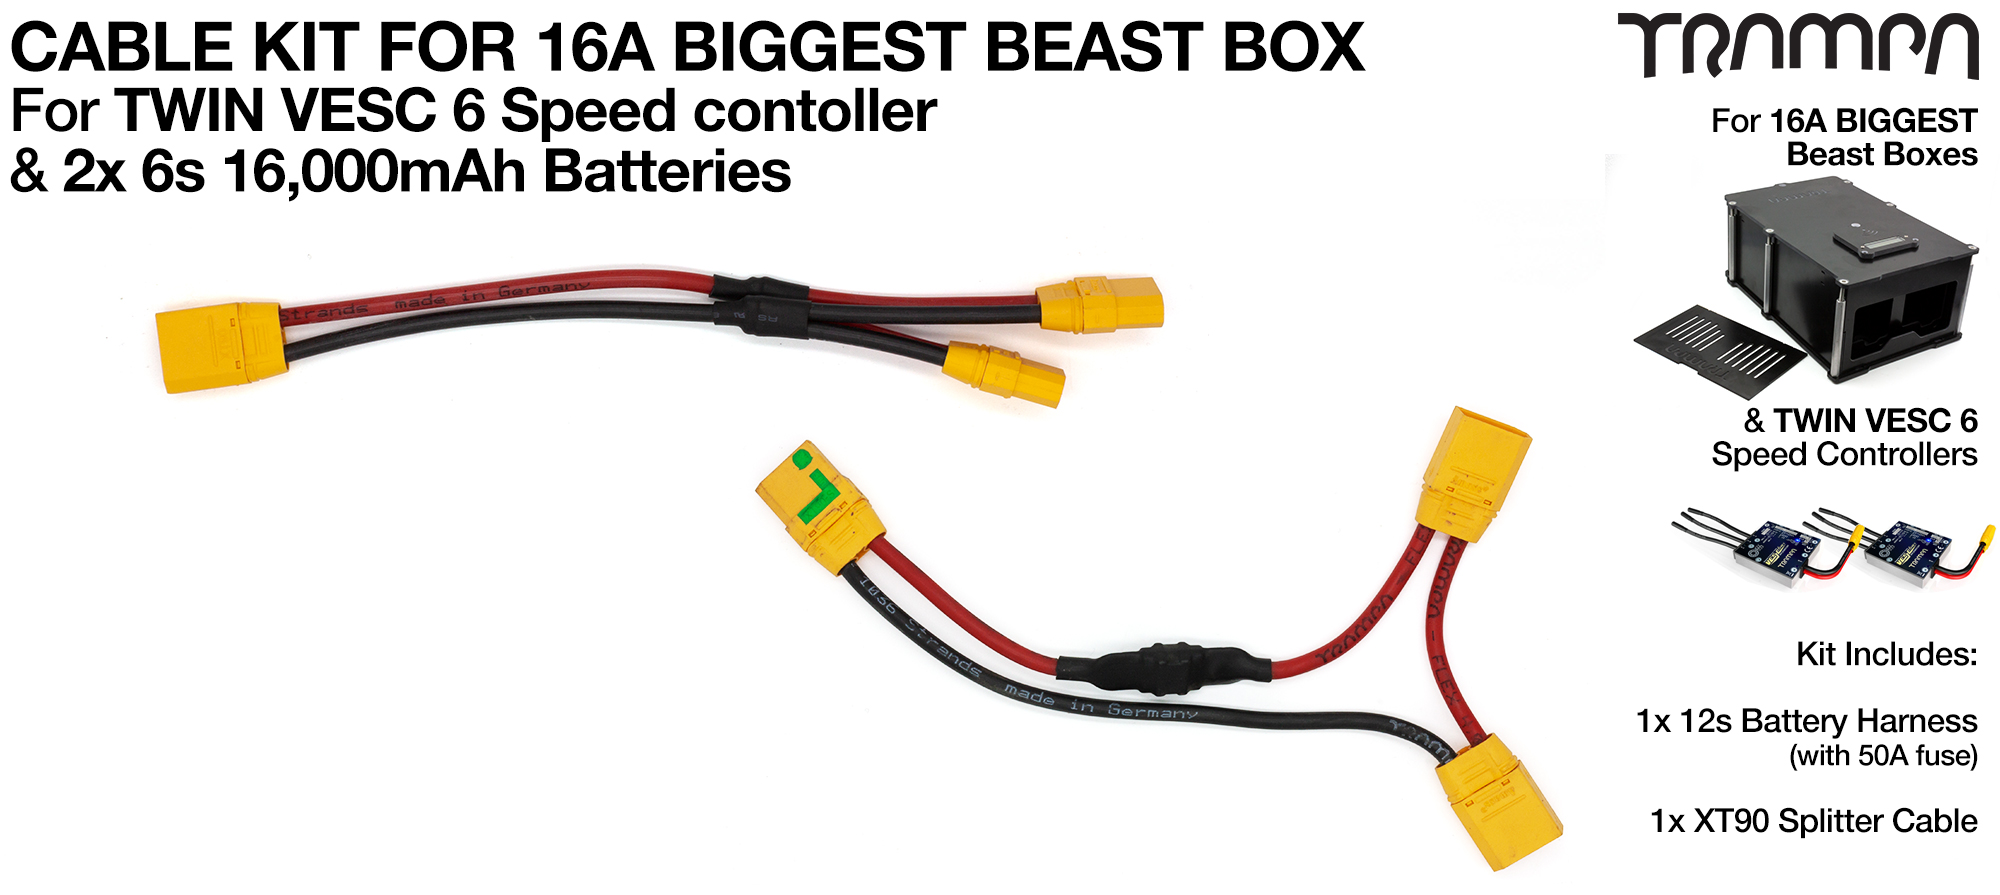 Complete Beast Box Cable Kit fr TWIN Motor With Loop-key, XT90 & XT90s Connectors, 50 Amp Fuse all soldered & heat sealed ready for plug & play use TRAMPA Stamped Silicone Cable!